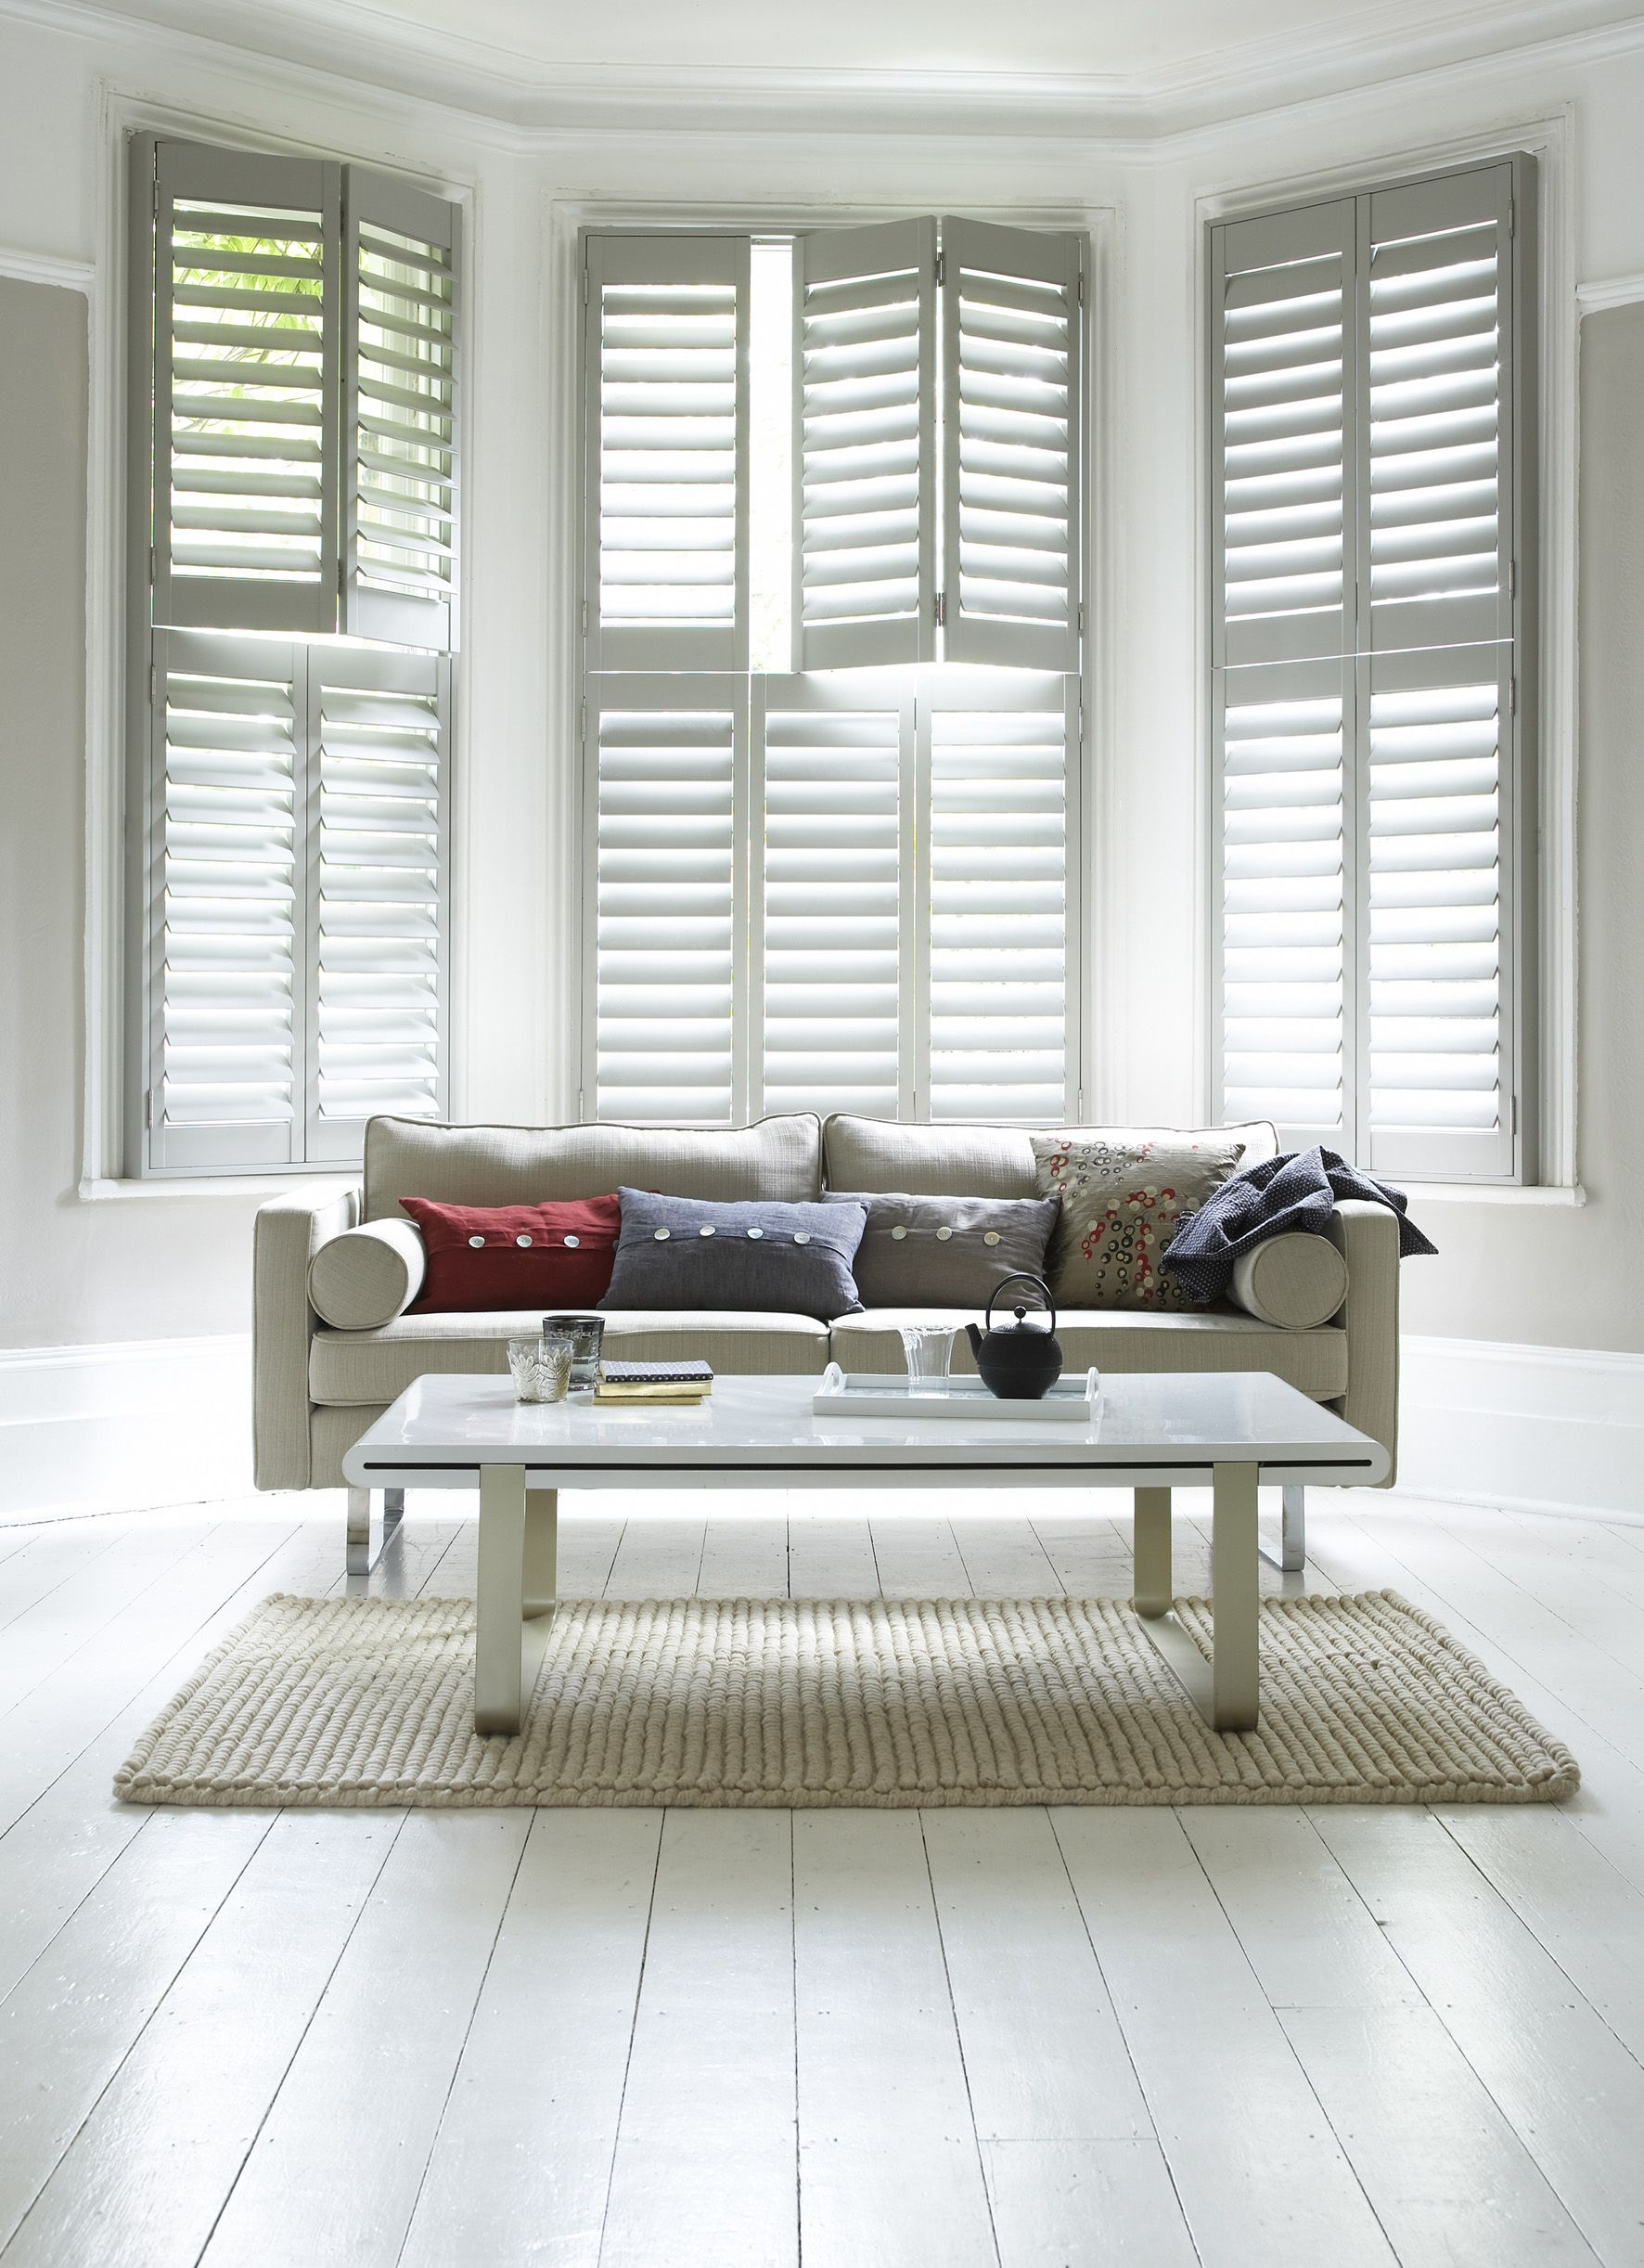 Pin By Norni Mdl On Cortinas Y Persianas Wooden Window Shutters